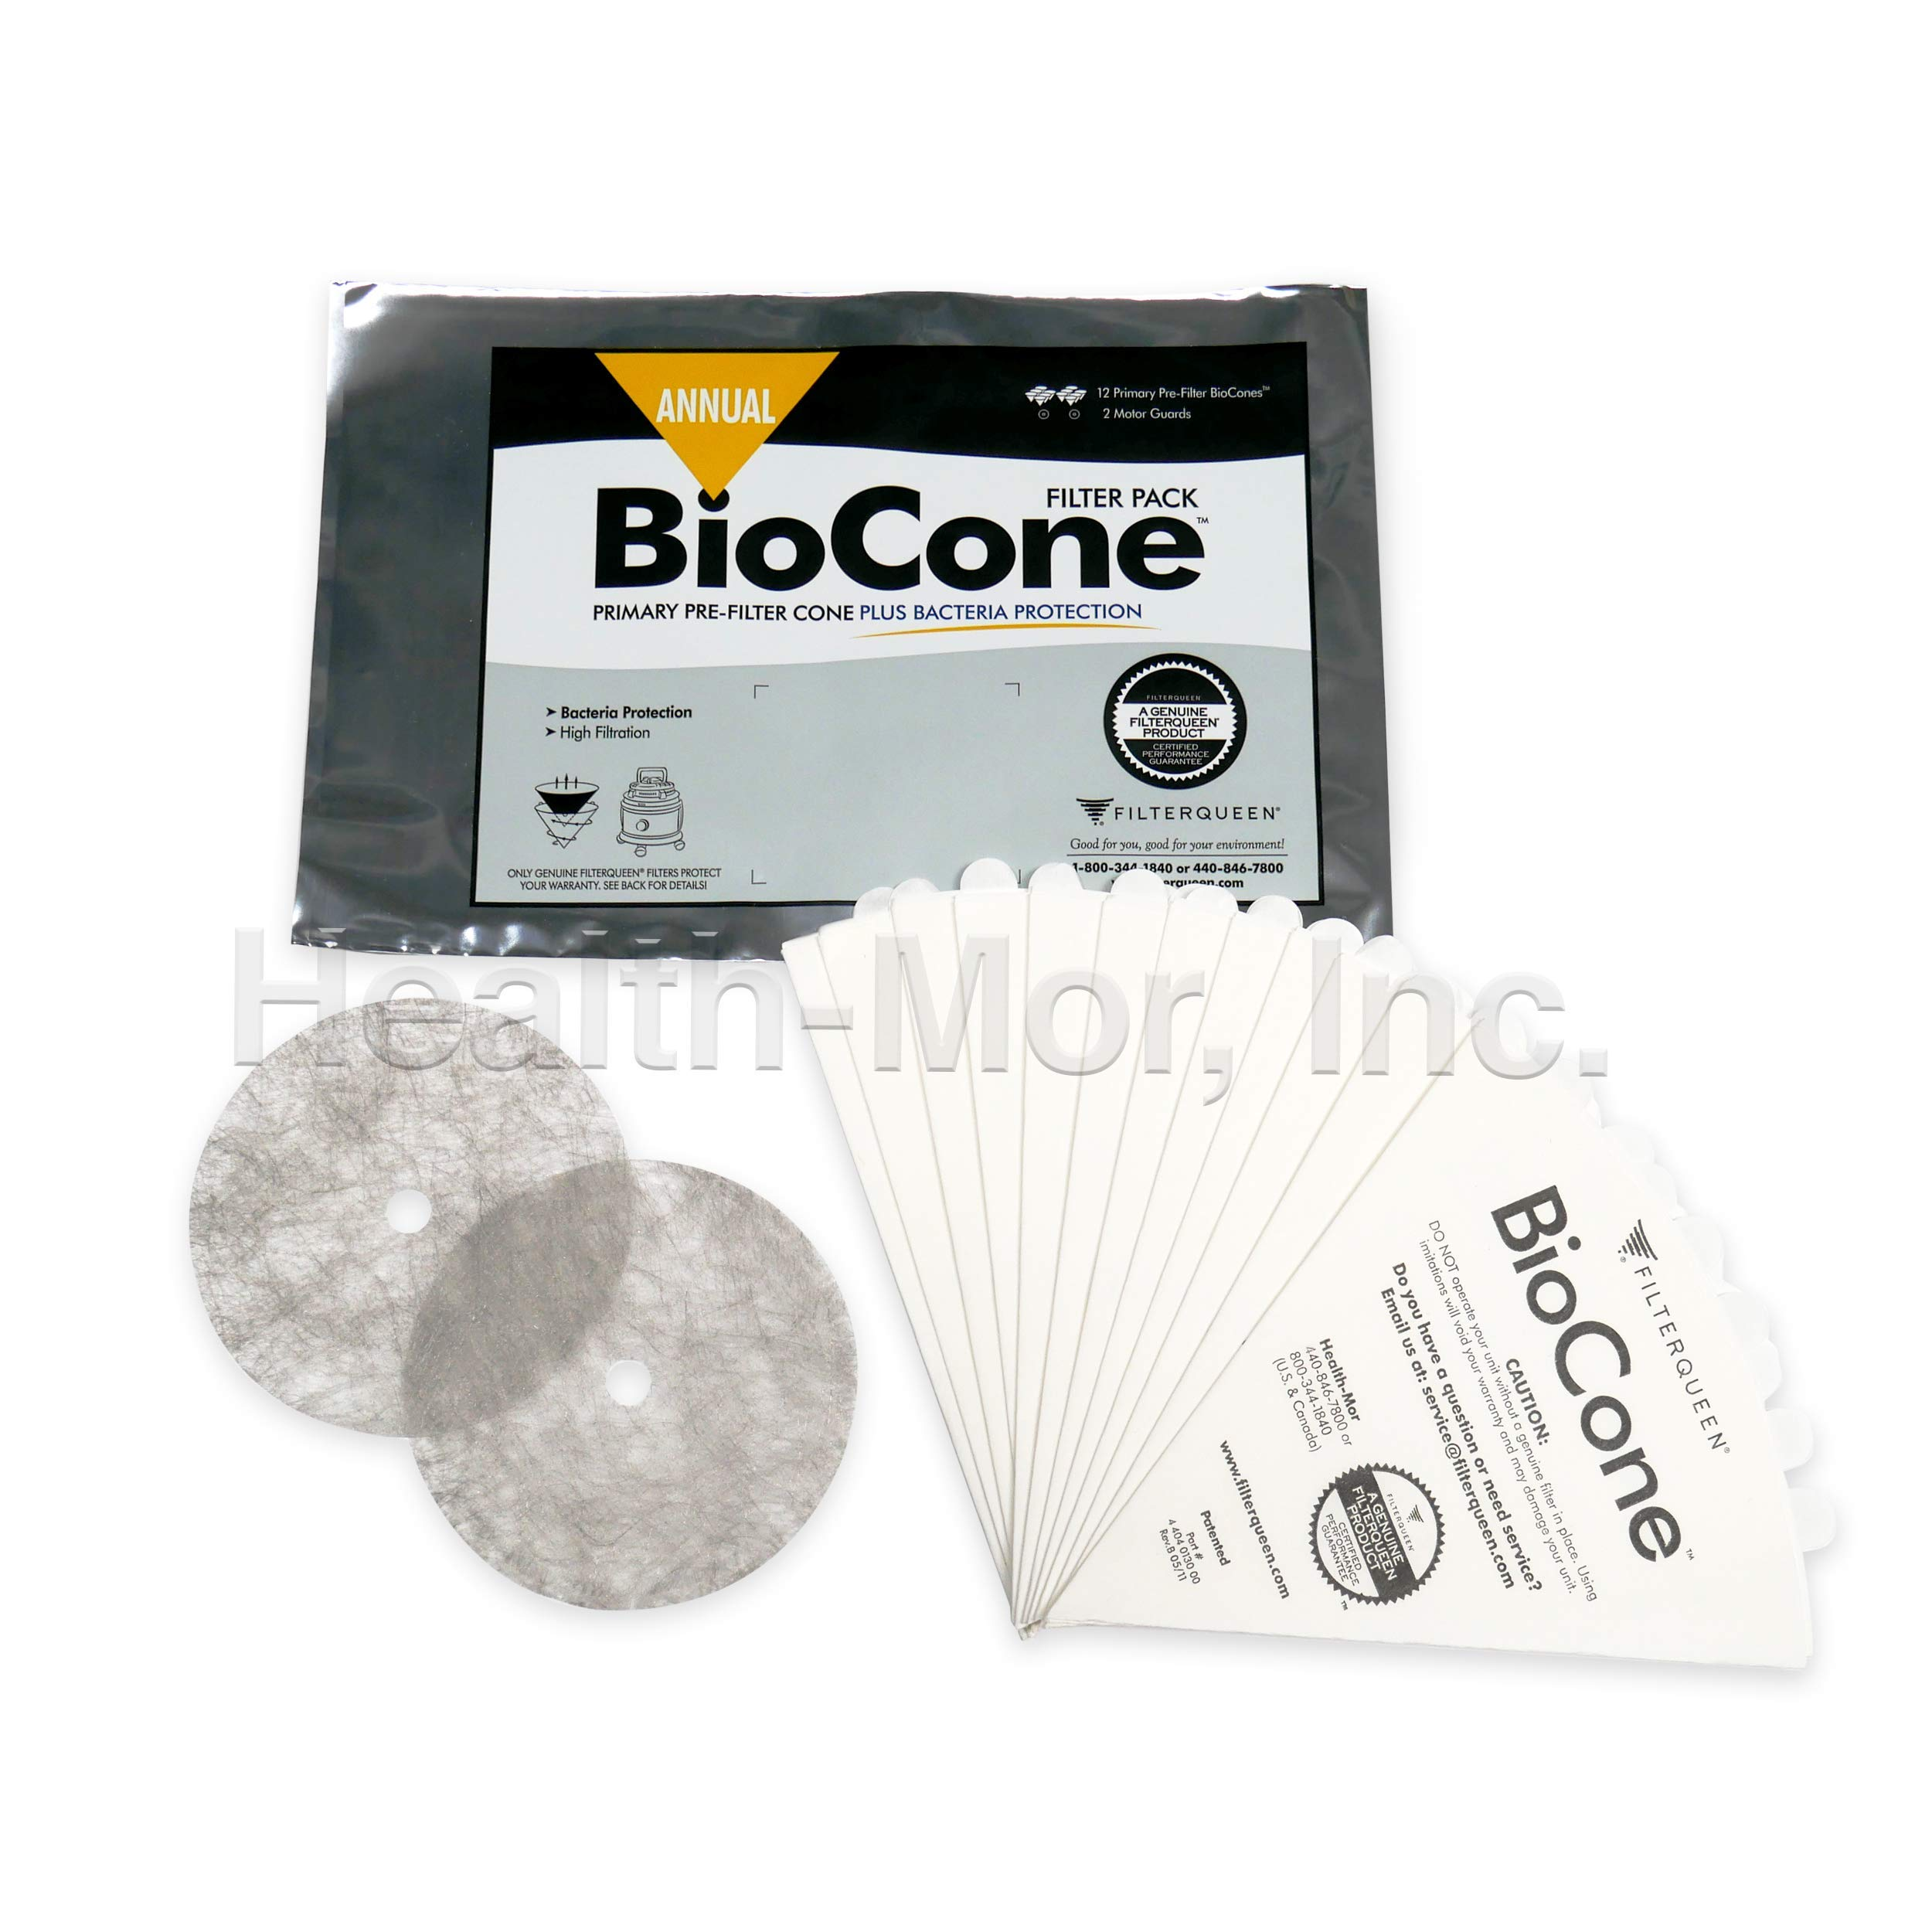 Filter Queen BioCone Filters - Annual Bundle by Filter Queen